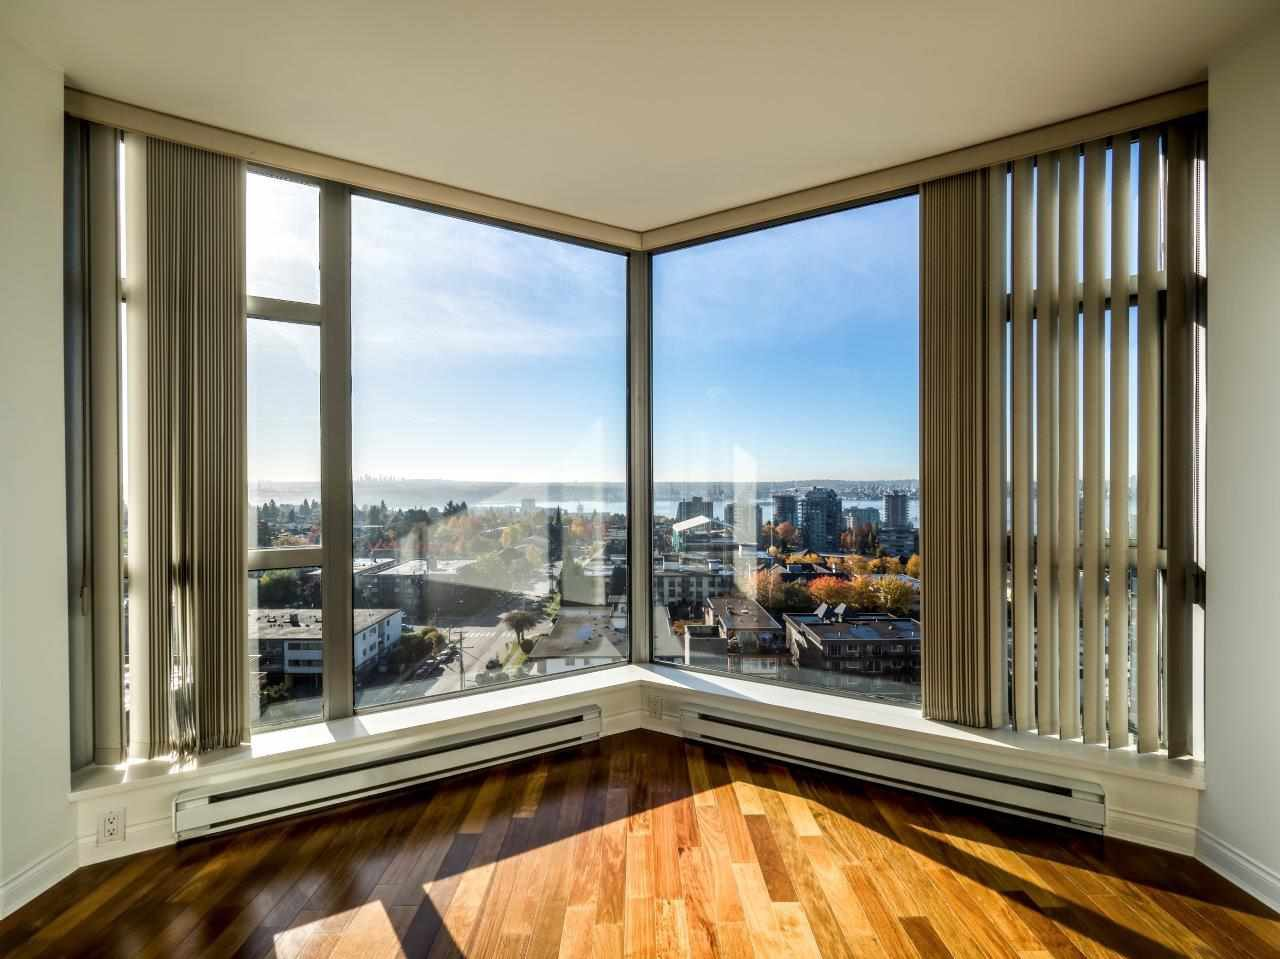 """Main Photo: 1205 160 E 13TH Street in North Vancouver: Central Lonsdale Condo for sale in """"THE GRANDE"""" : MLS®# R2217335"""